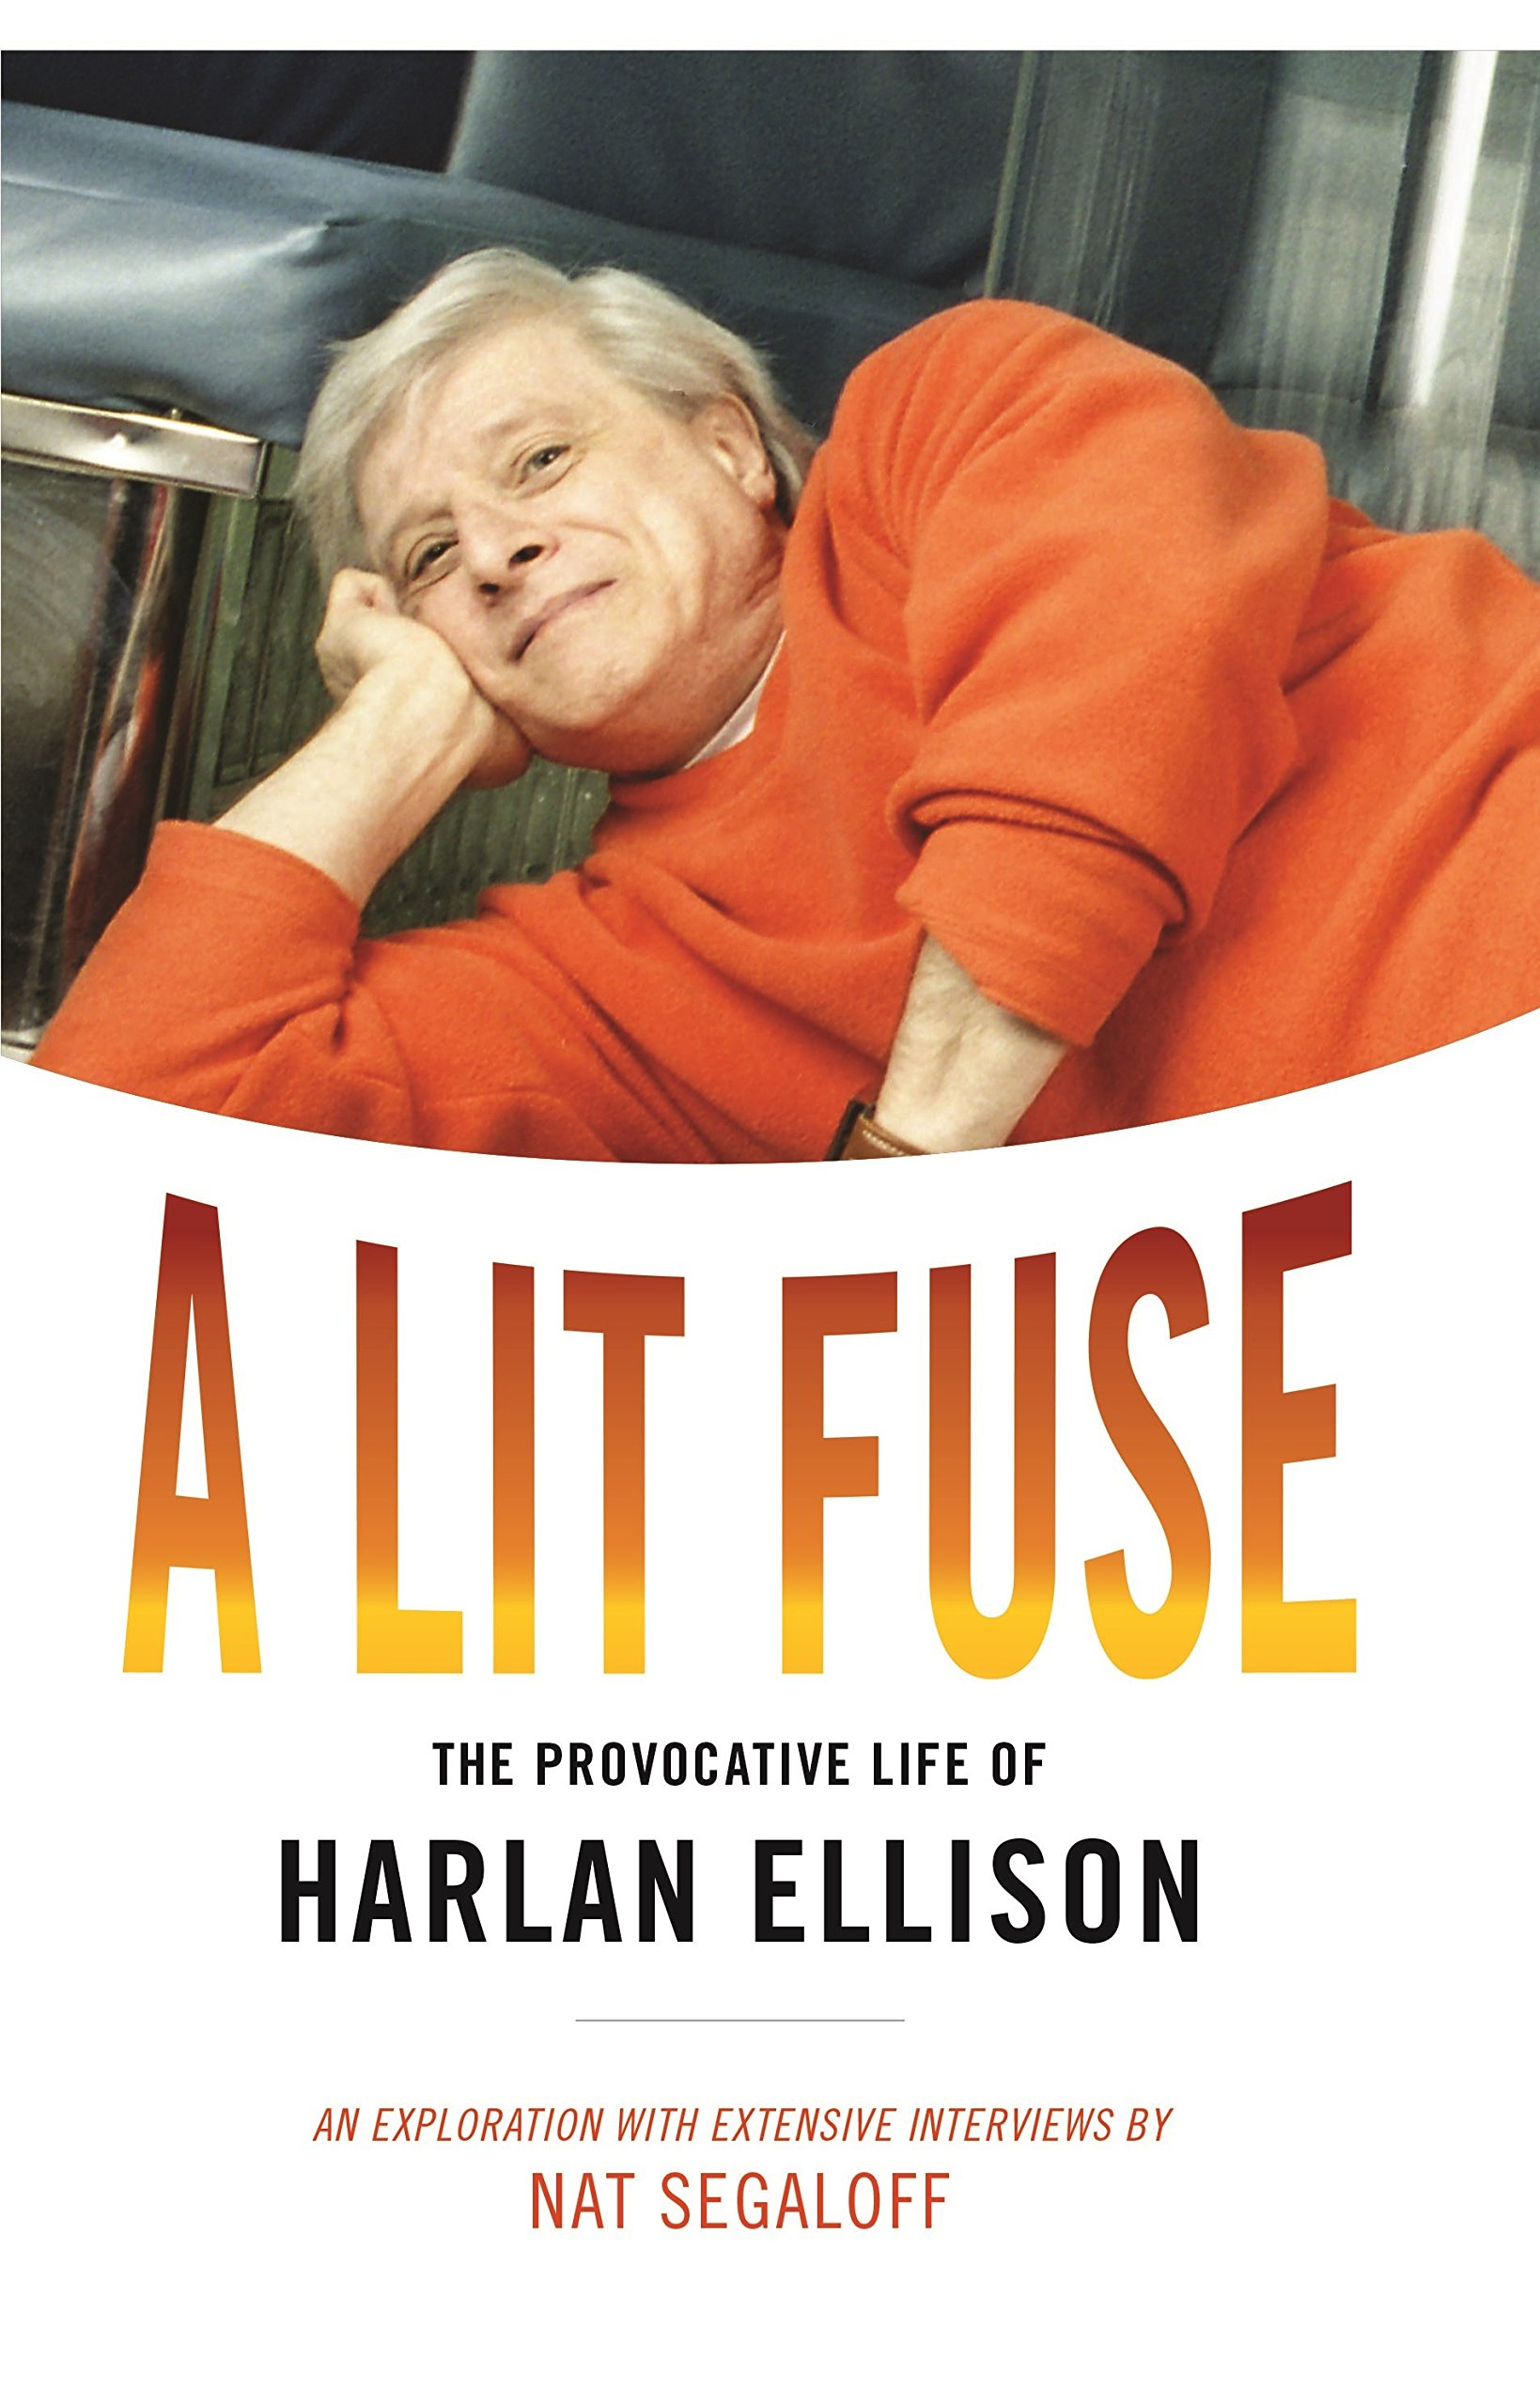 A Lit Fuse The Provocative Life Of Harlan Ellison Nat Segaloff Rover 416 Box David G Grubbs 9781610373234 Books